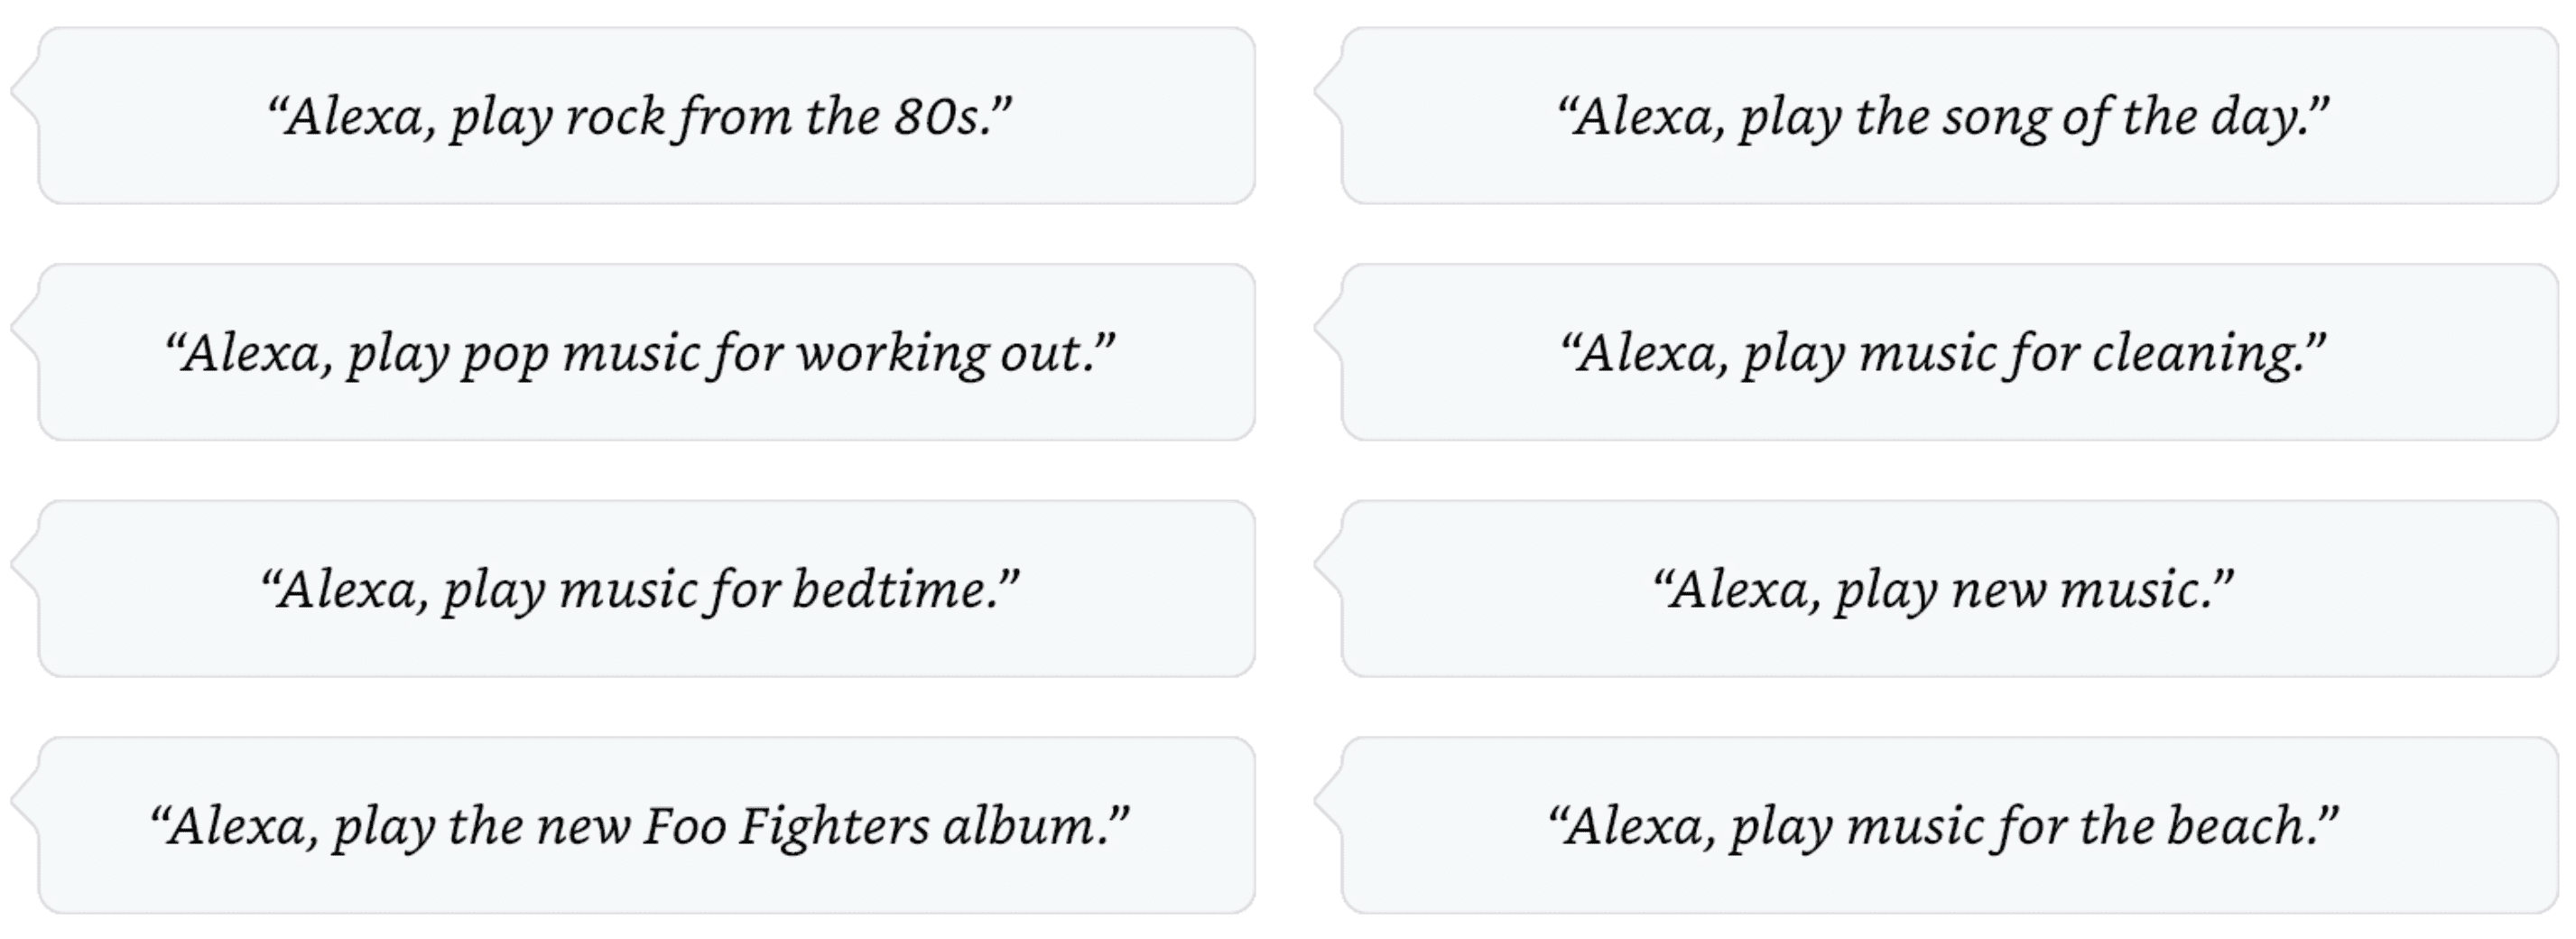 How to Get Alexa to Play Amazon Music